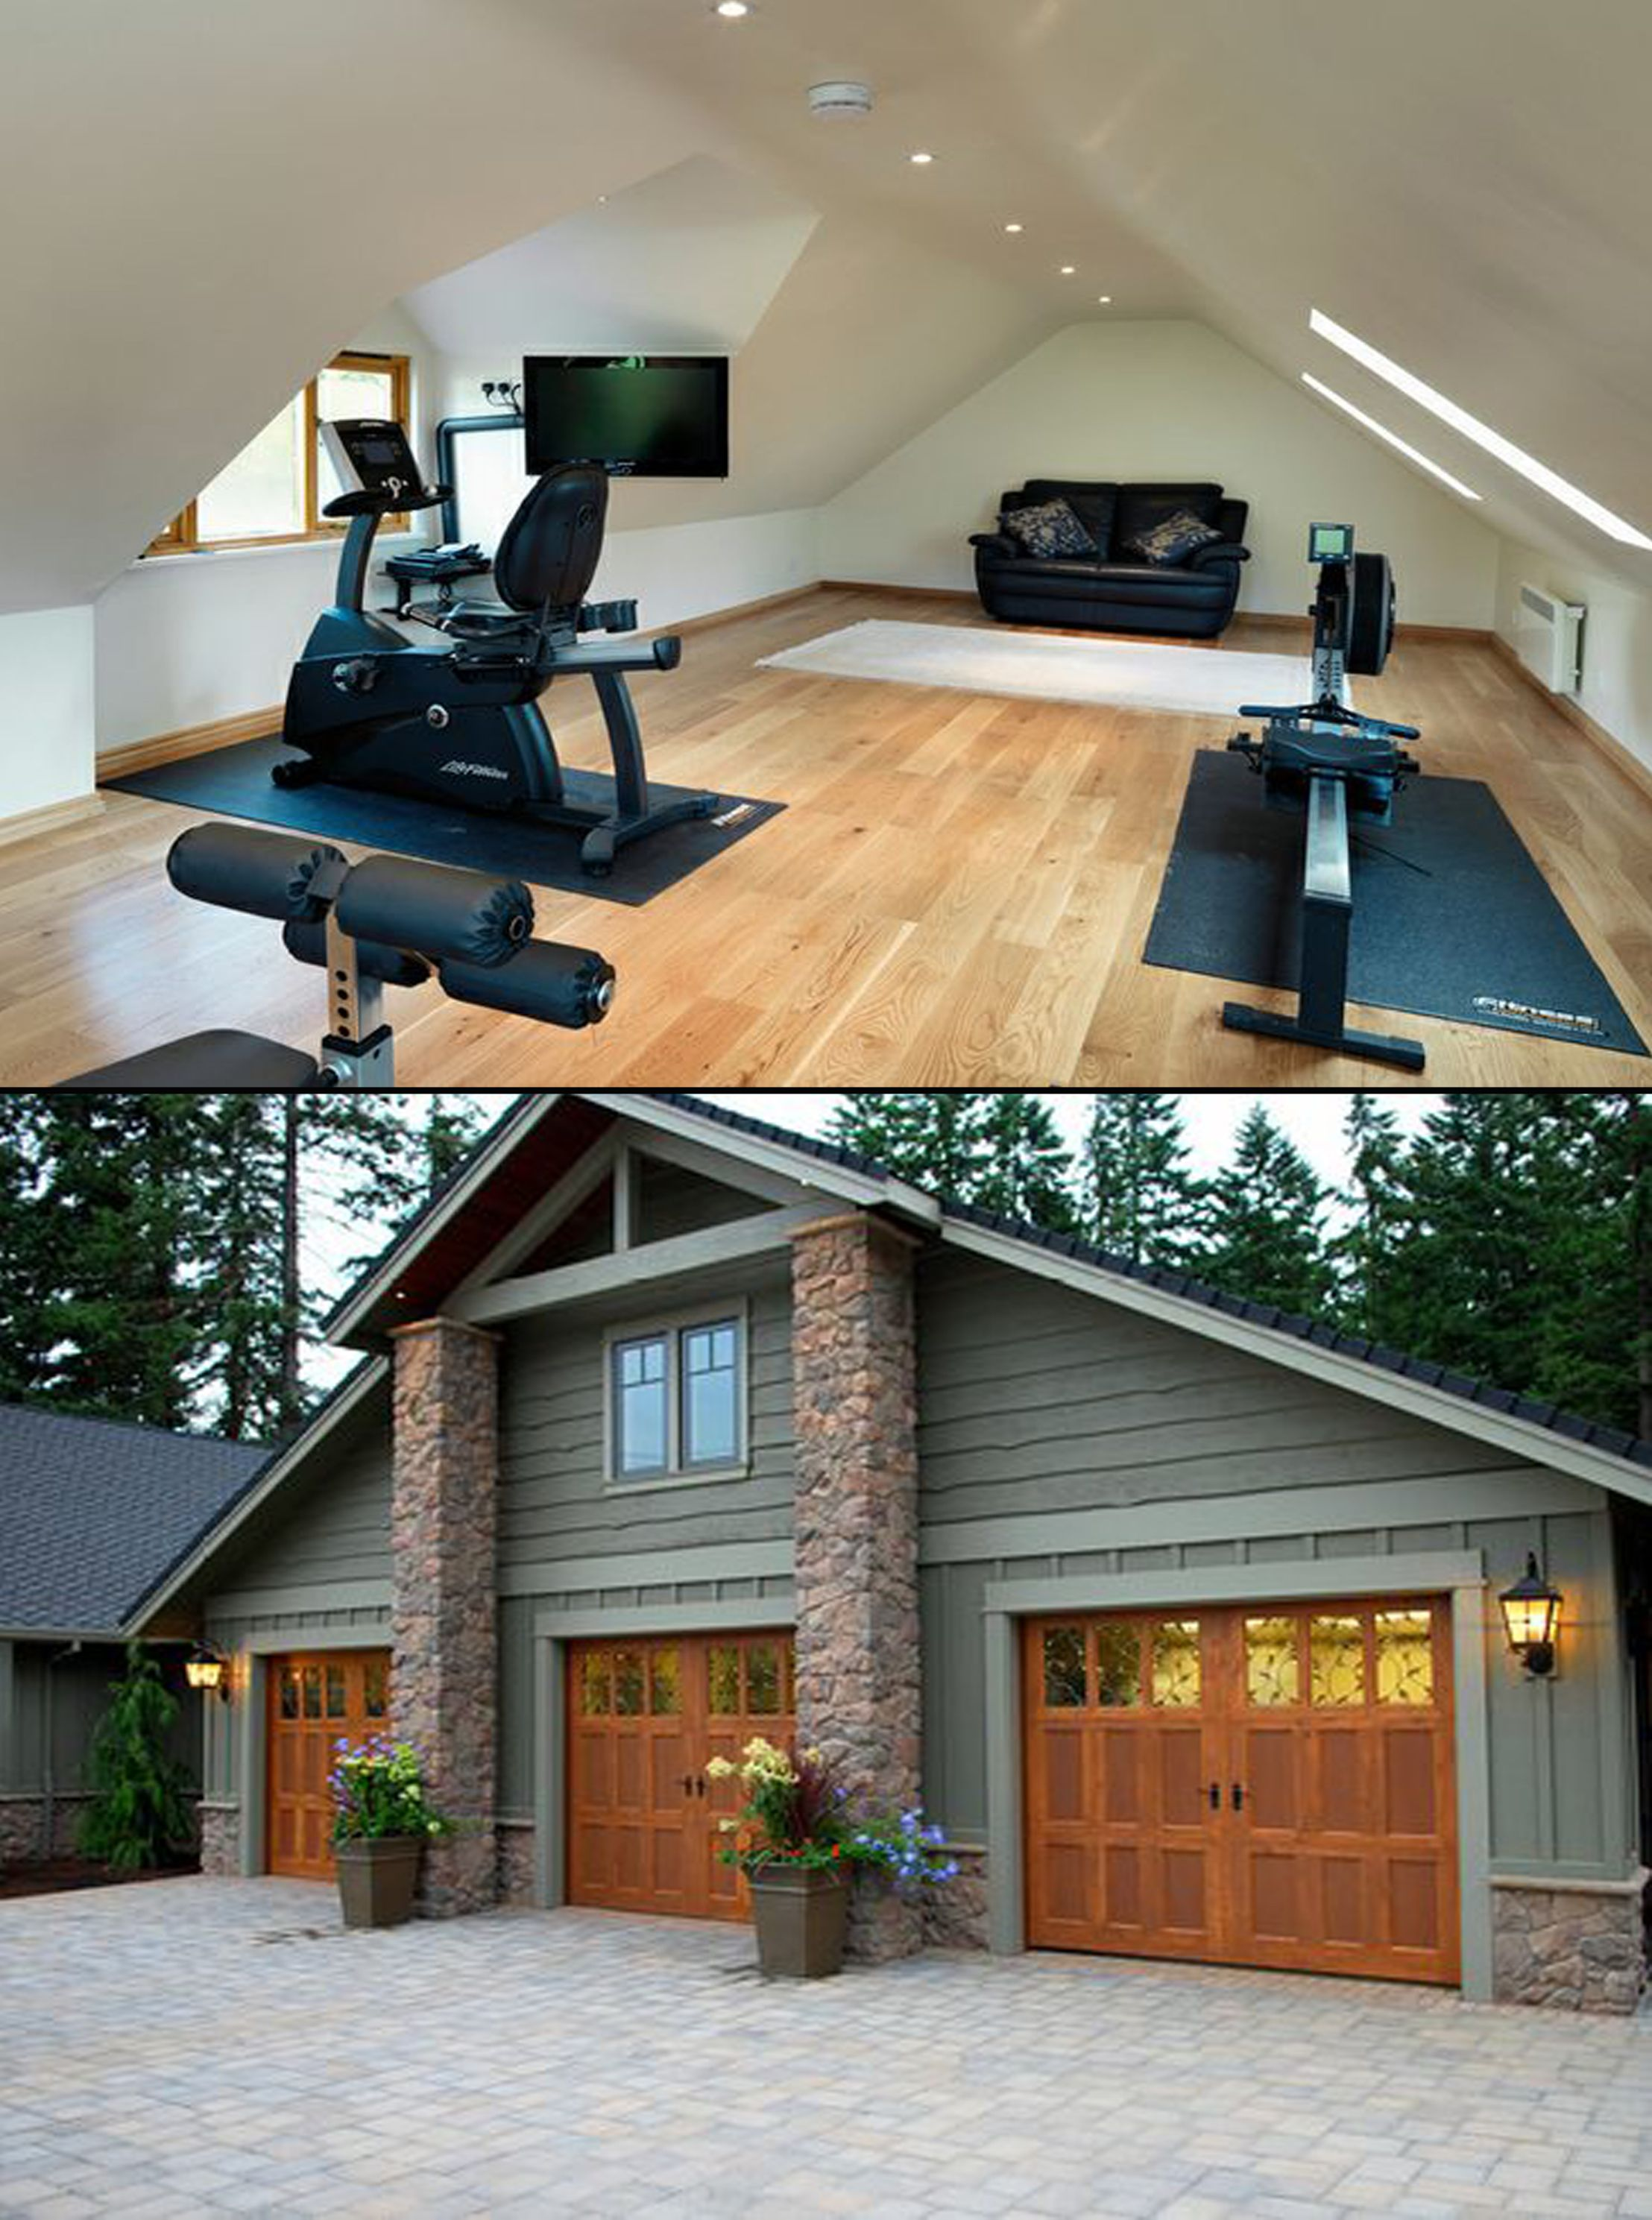 3 Car Garage With Gym Upstairs New Homes